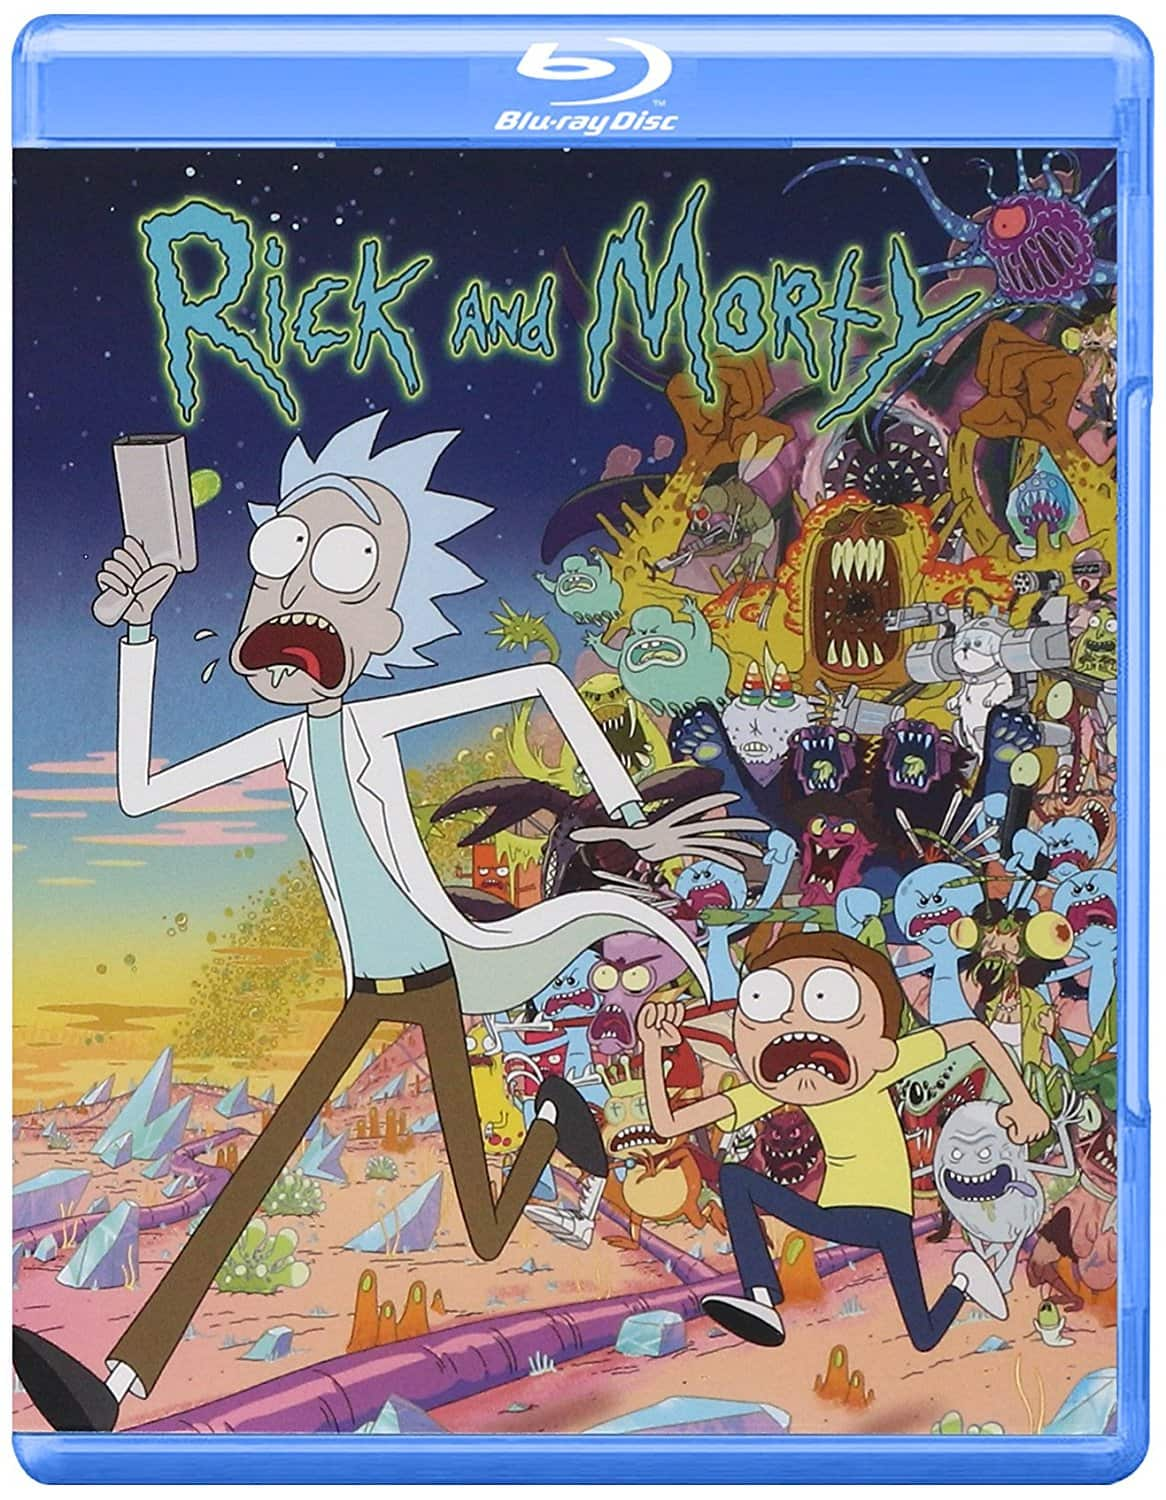 Rick & Morty: Complete Season 1 & 2 (Blu-ray) - $9.99 each + Free Store Pickup/Shipping w/ $35+ @ Best Buy